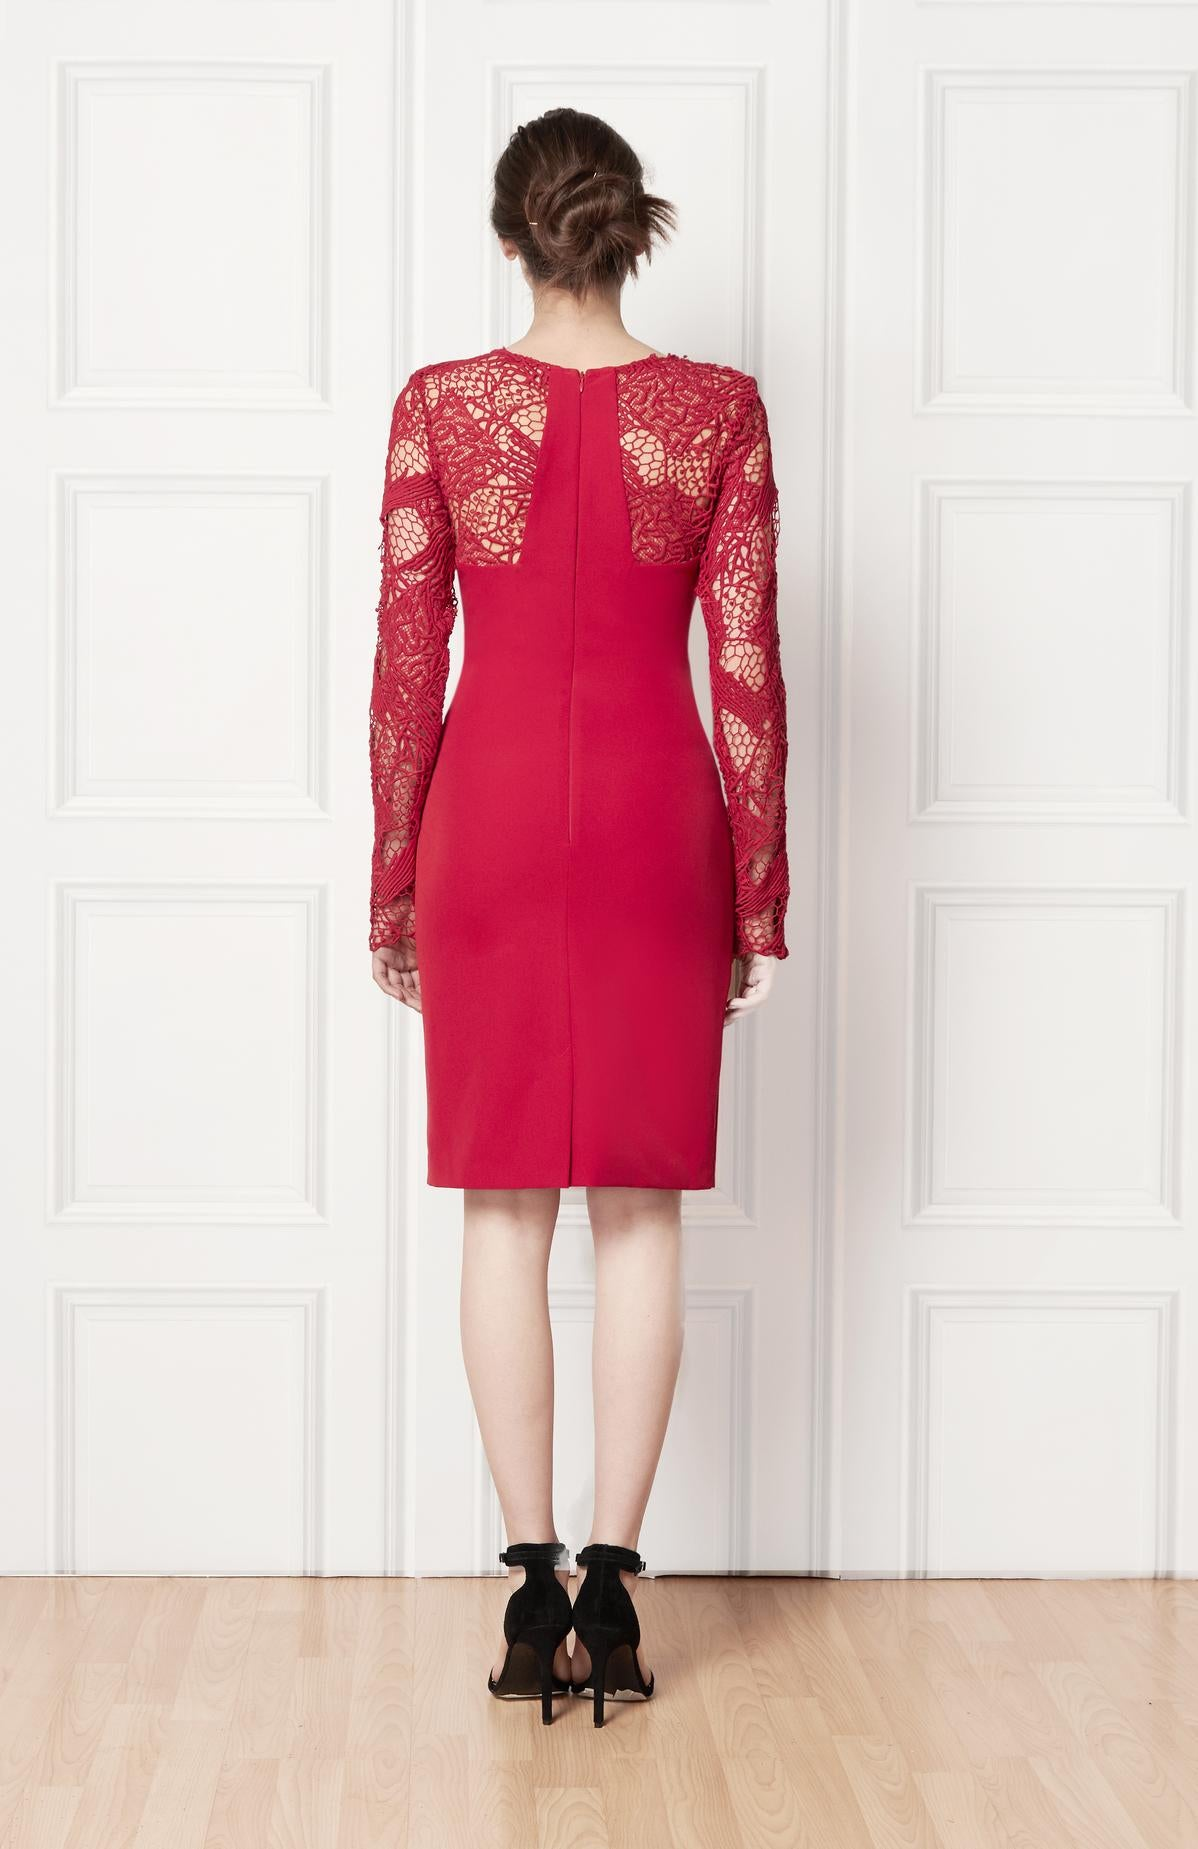 Mirielle Red Dress - HEMYCA London